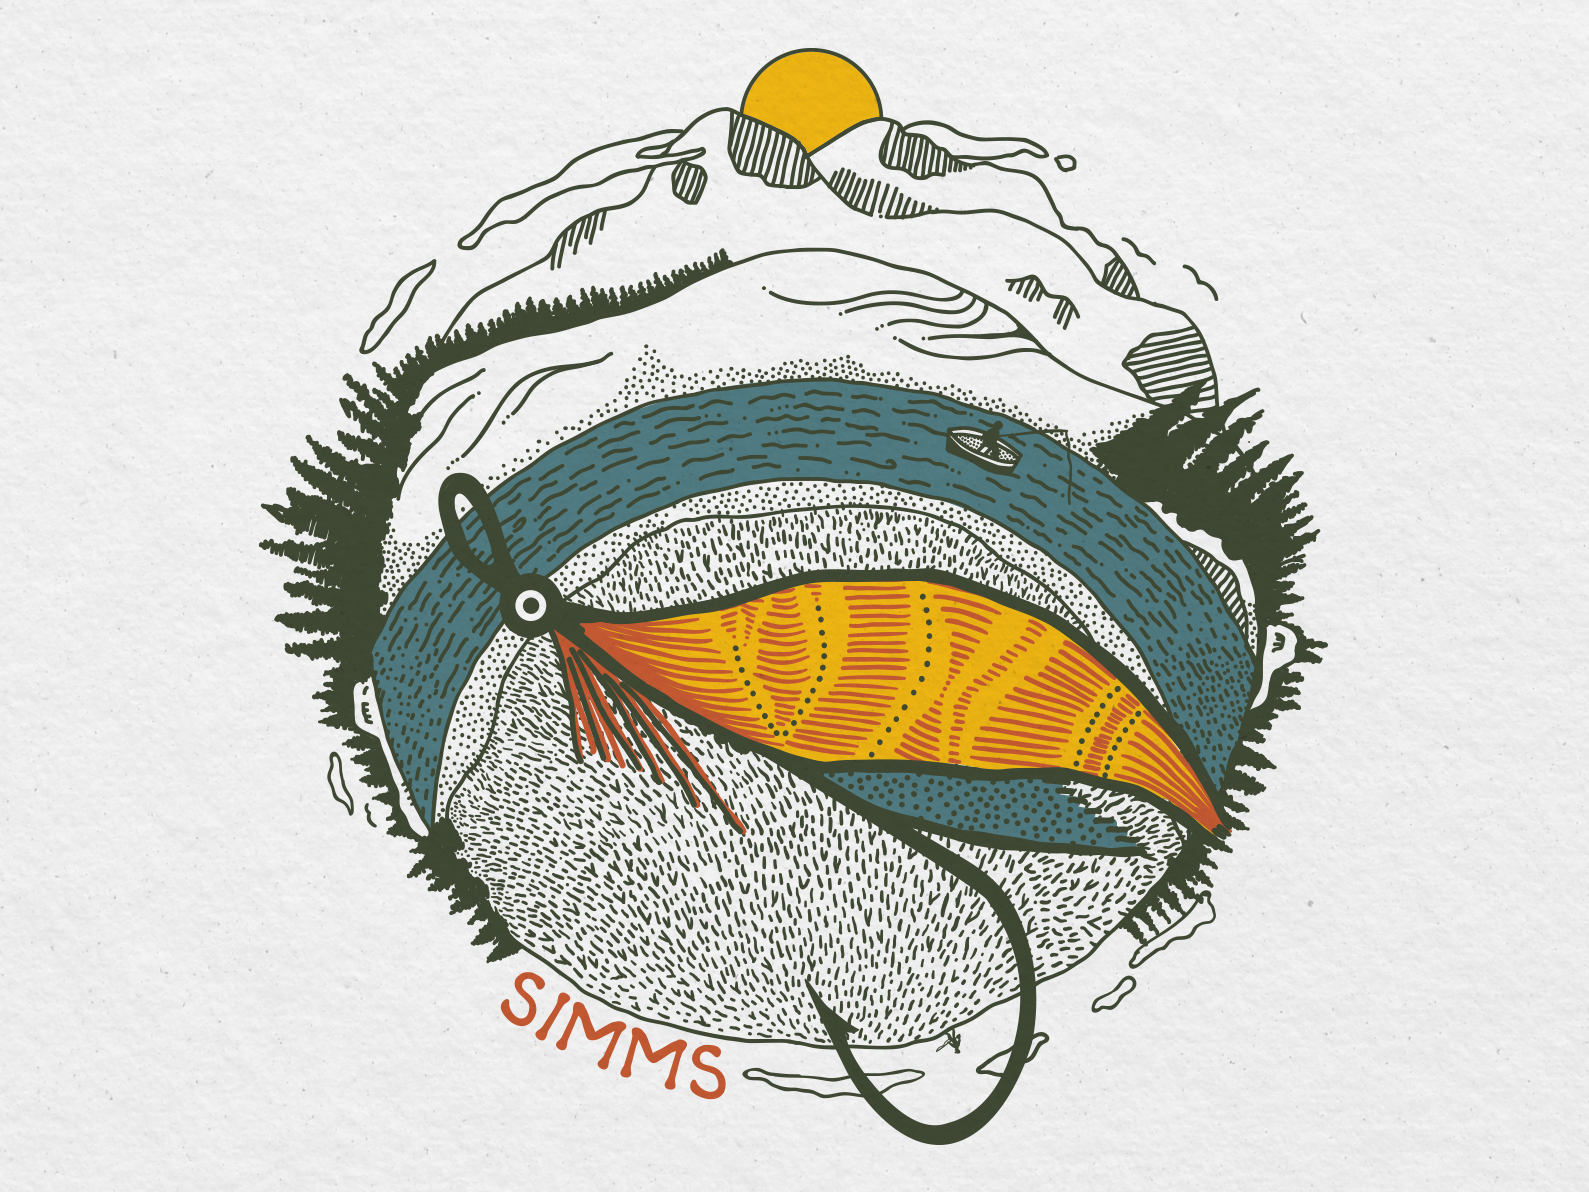 Concept artwork for Simms Fishing